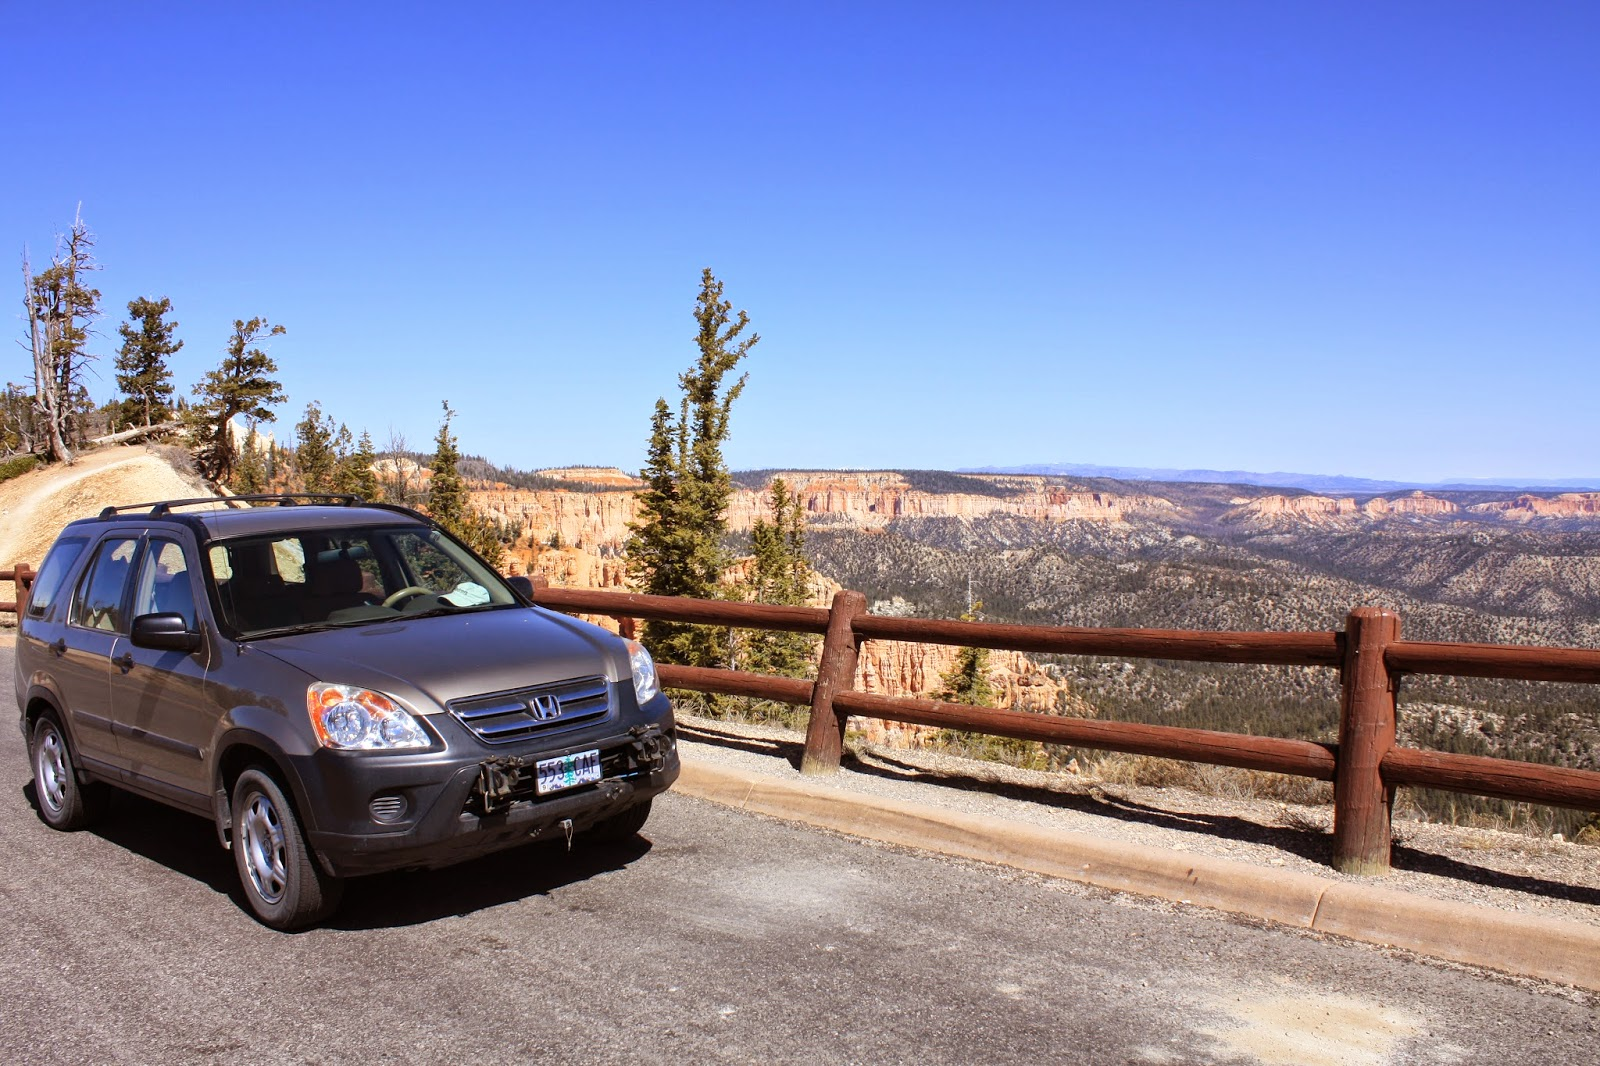 Honda CRV parked in Ponderosa Canyon overlook